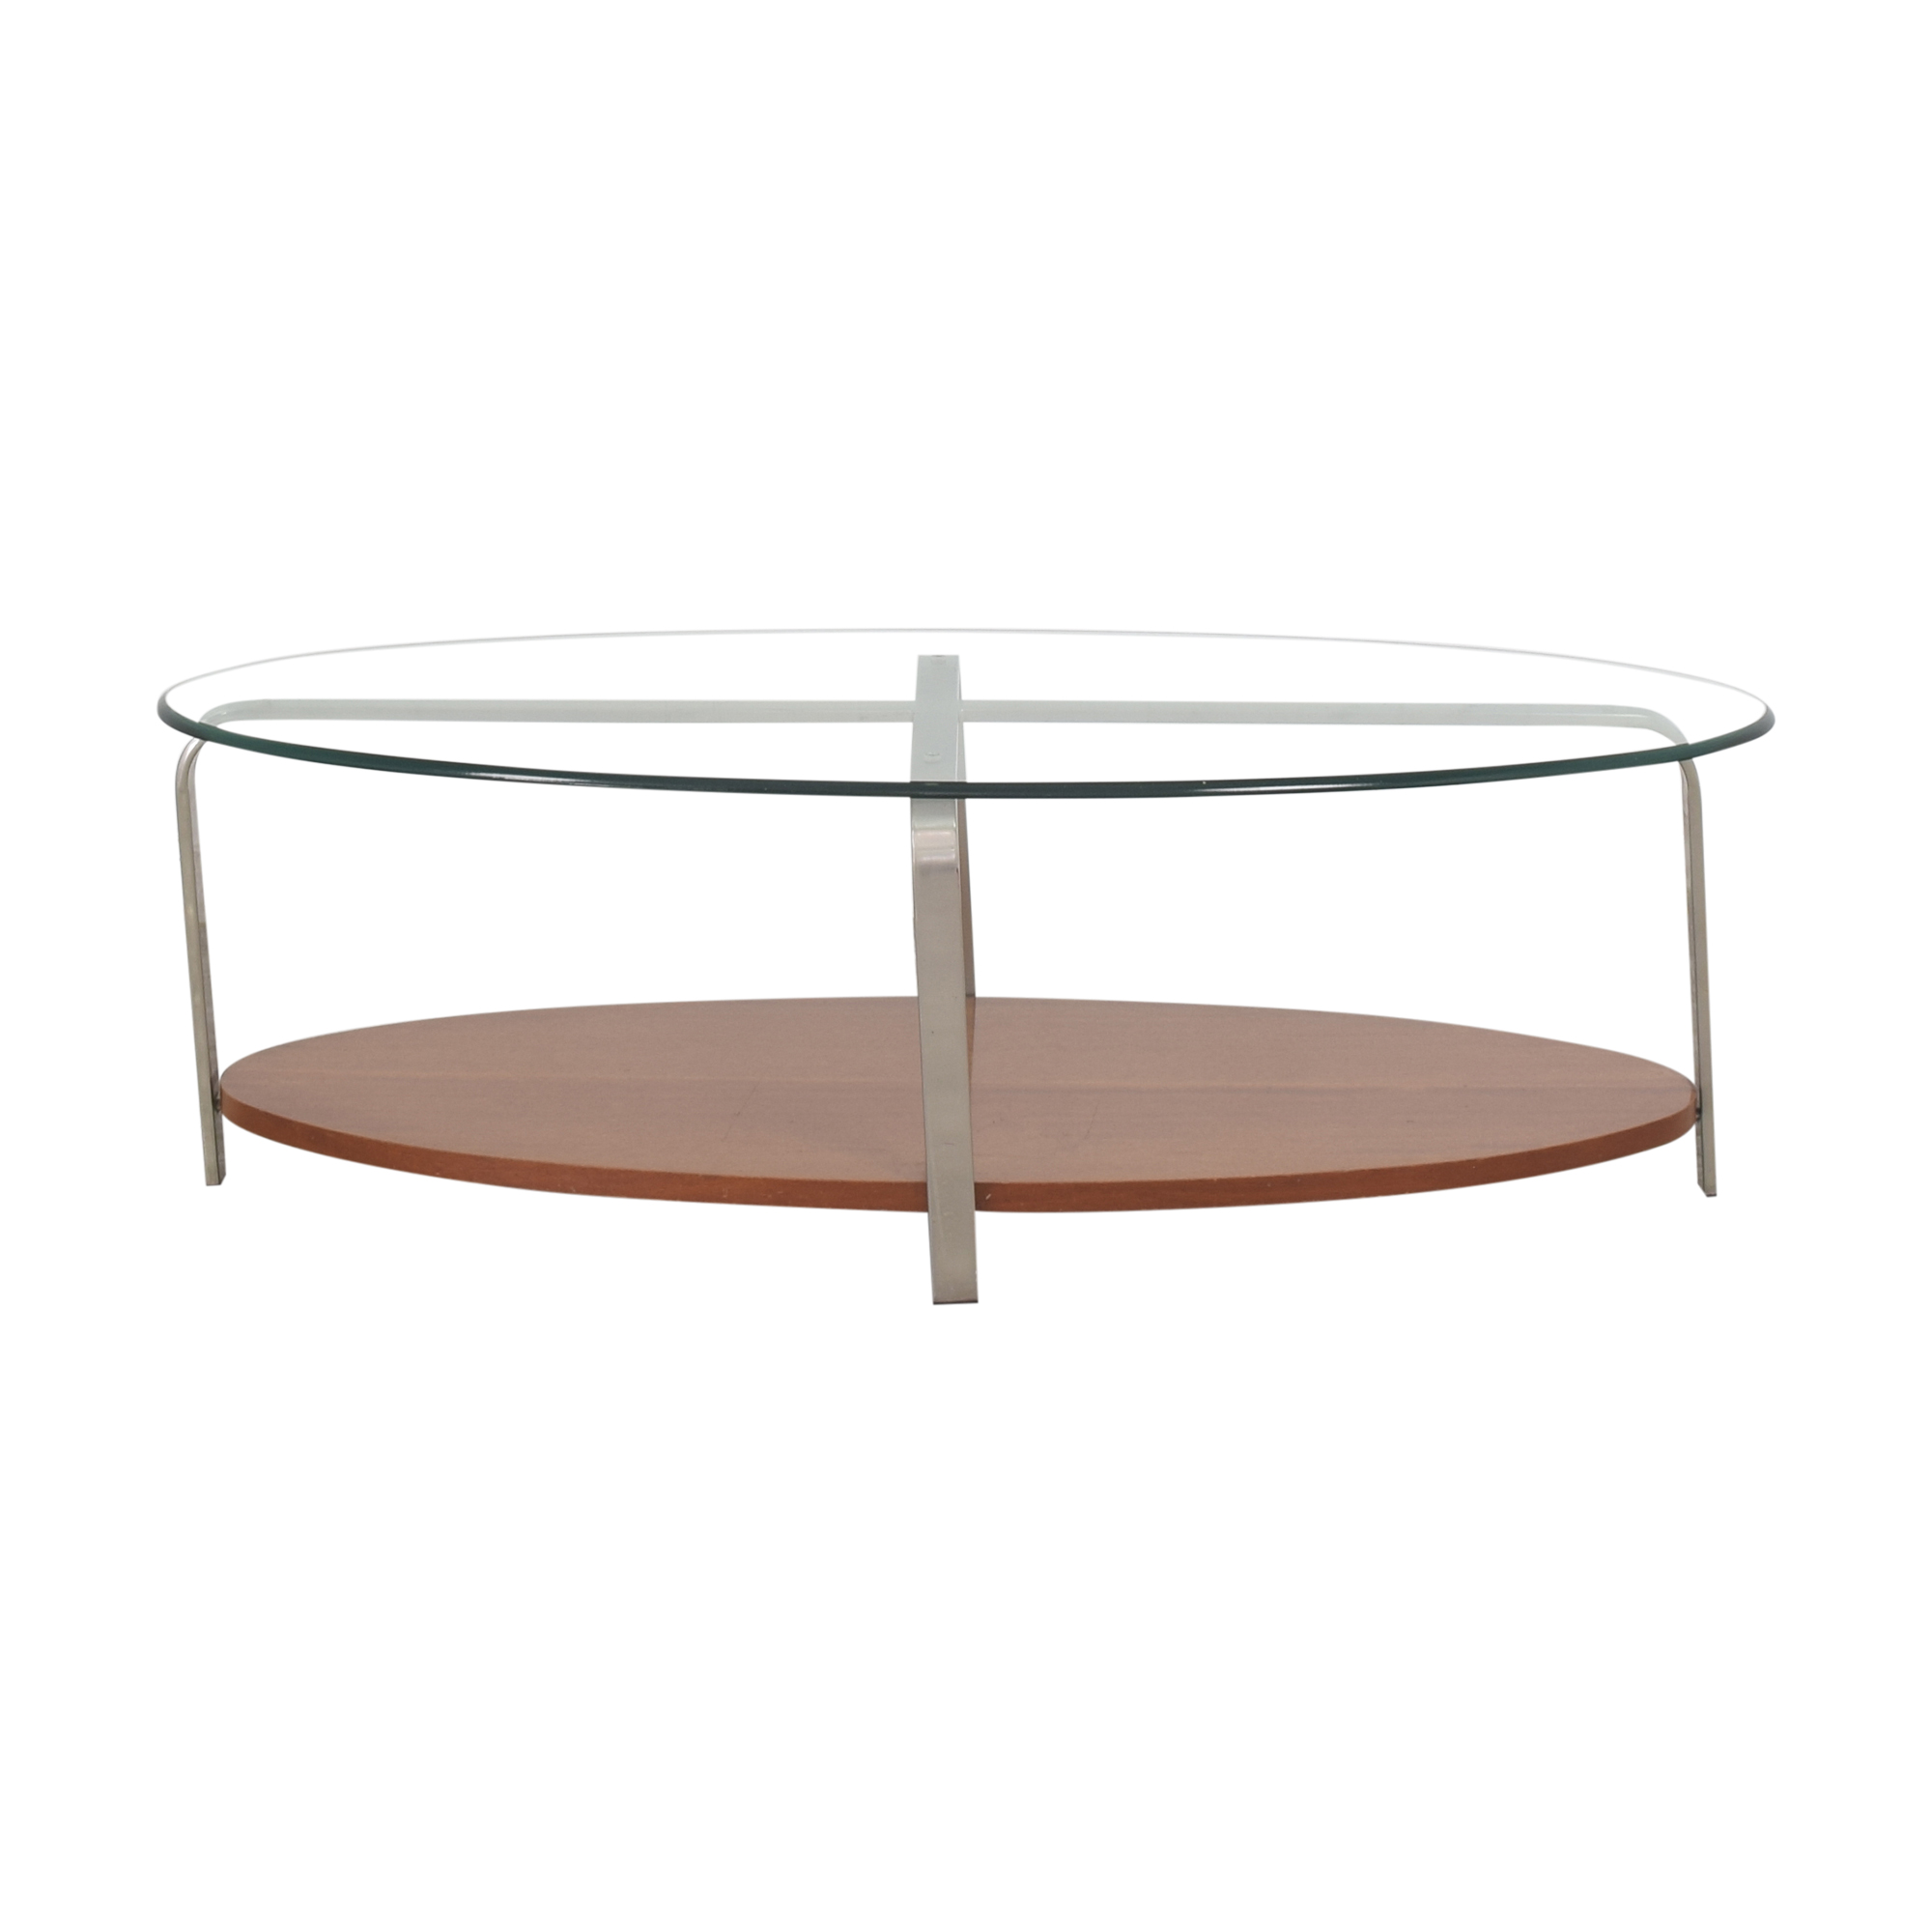 The Lane Company The Lane Company Oval Coffee Table ct